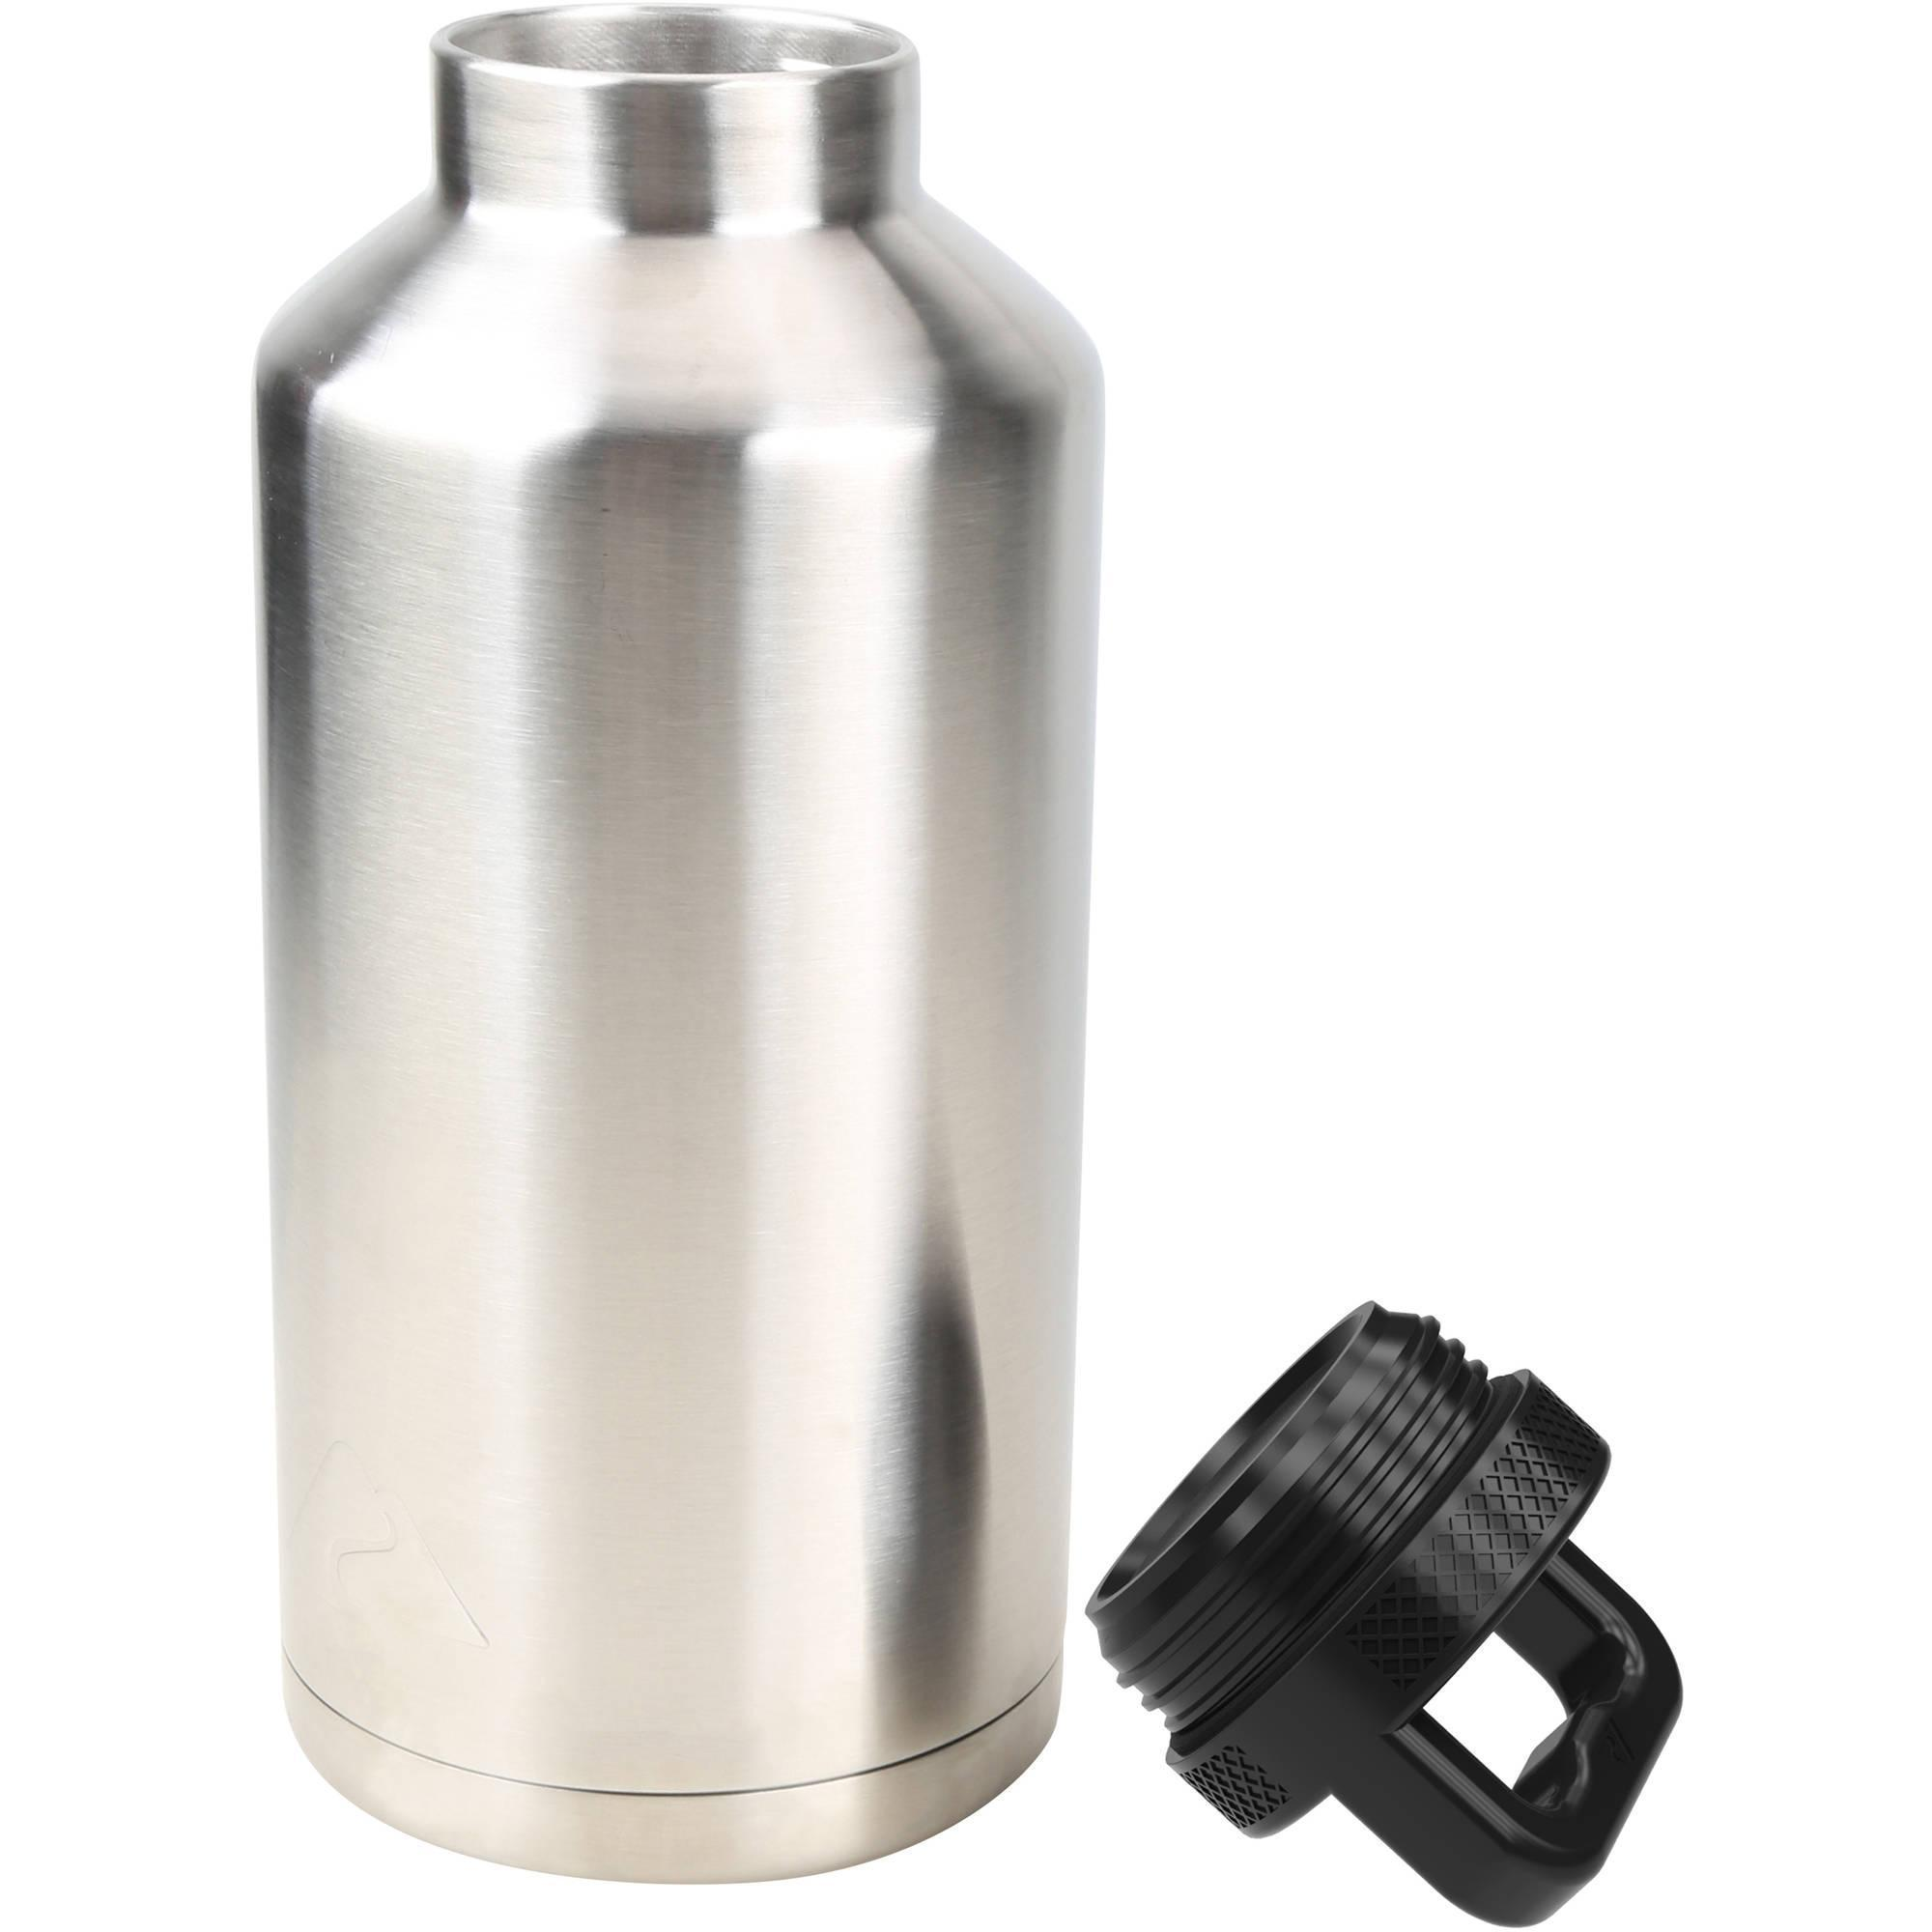 64oz Ozark Trail Double Wall Water Bottle for $10.86